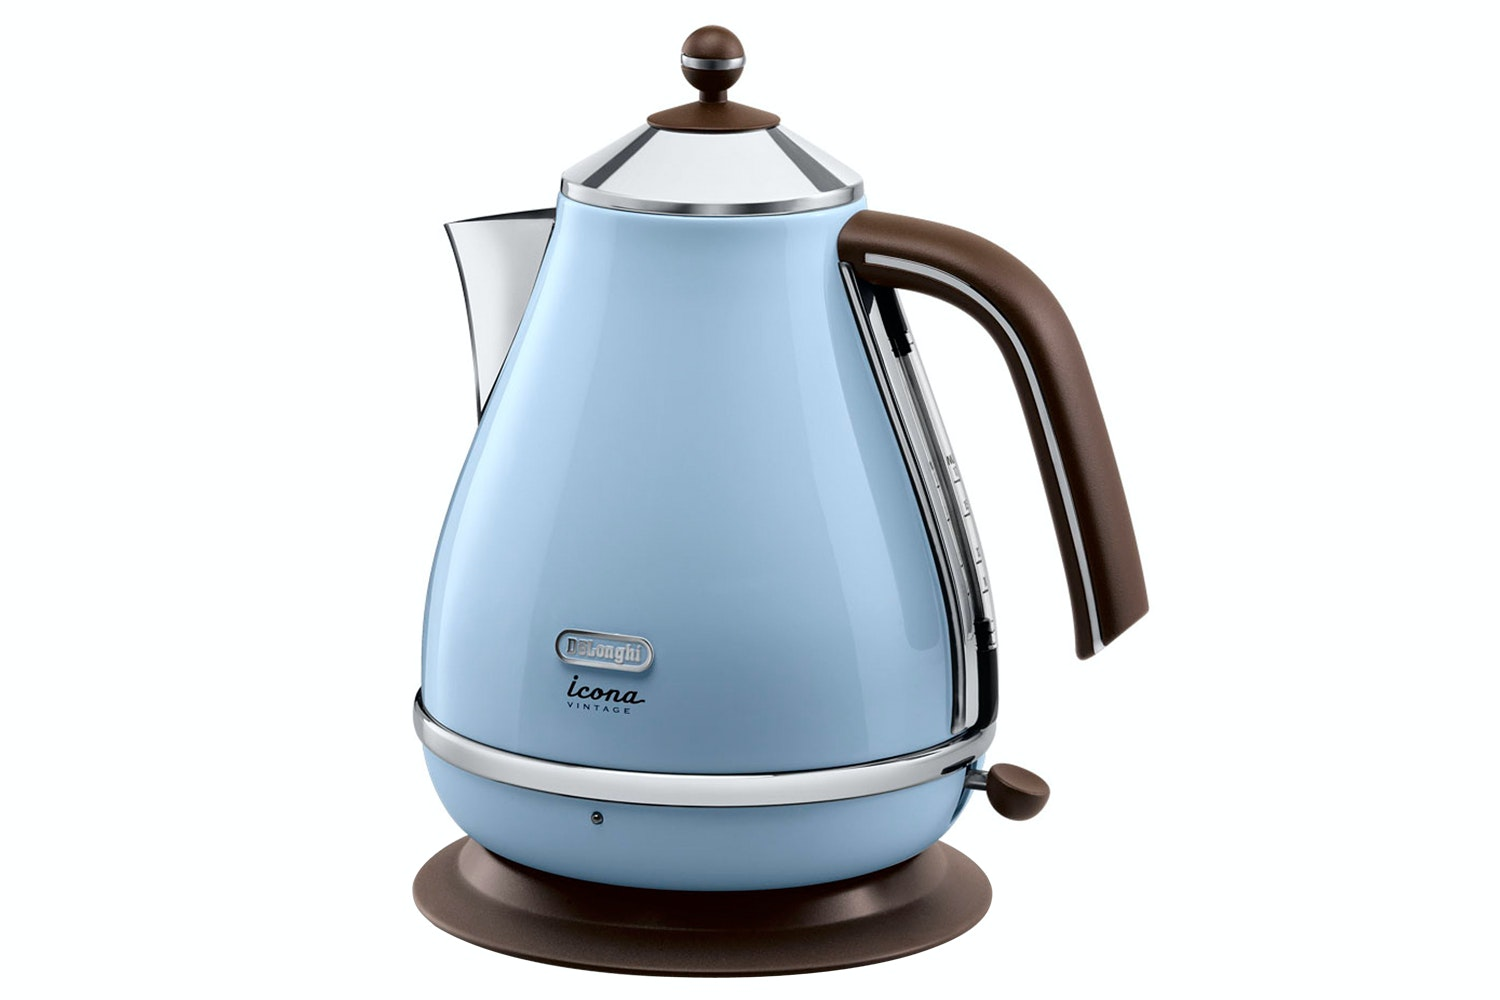 DeLonghi 1.7L Vintage Kettle | Blue